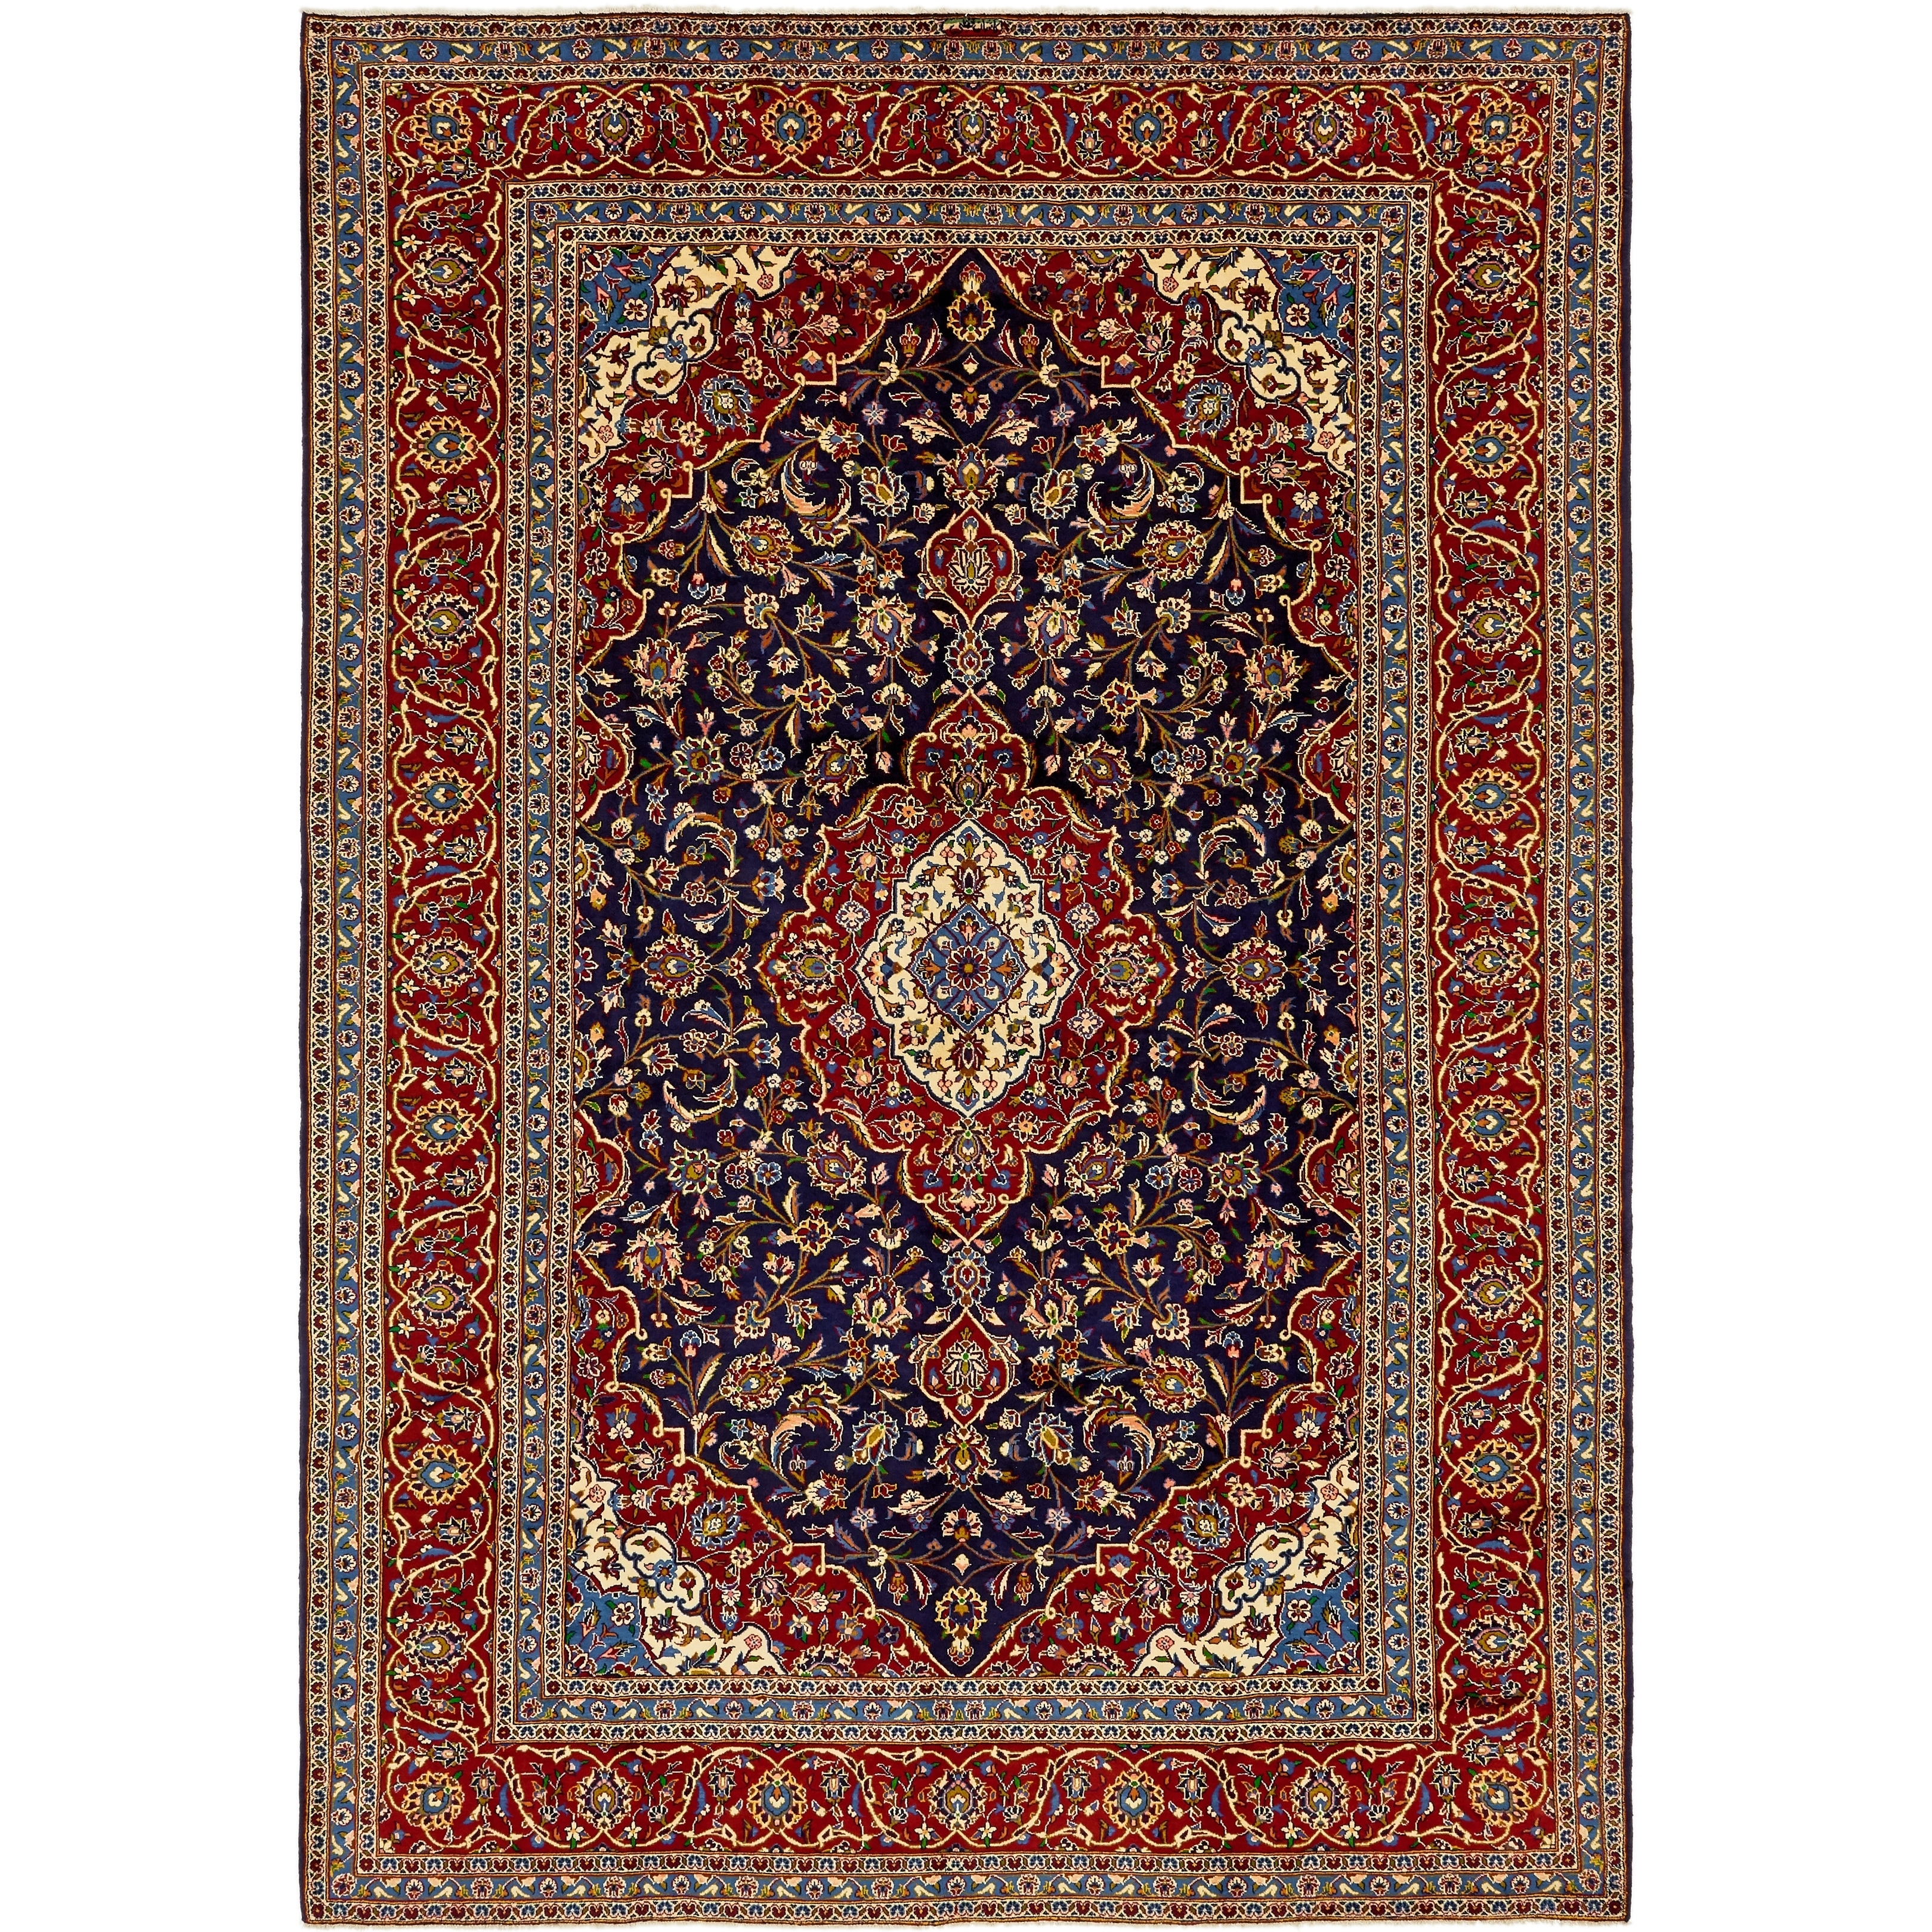 Hand Knotted Kashan Wool Area Rug - 9 x 12 8 (Navy blue - 9 x 12 8)